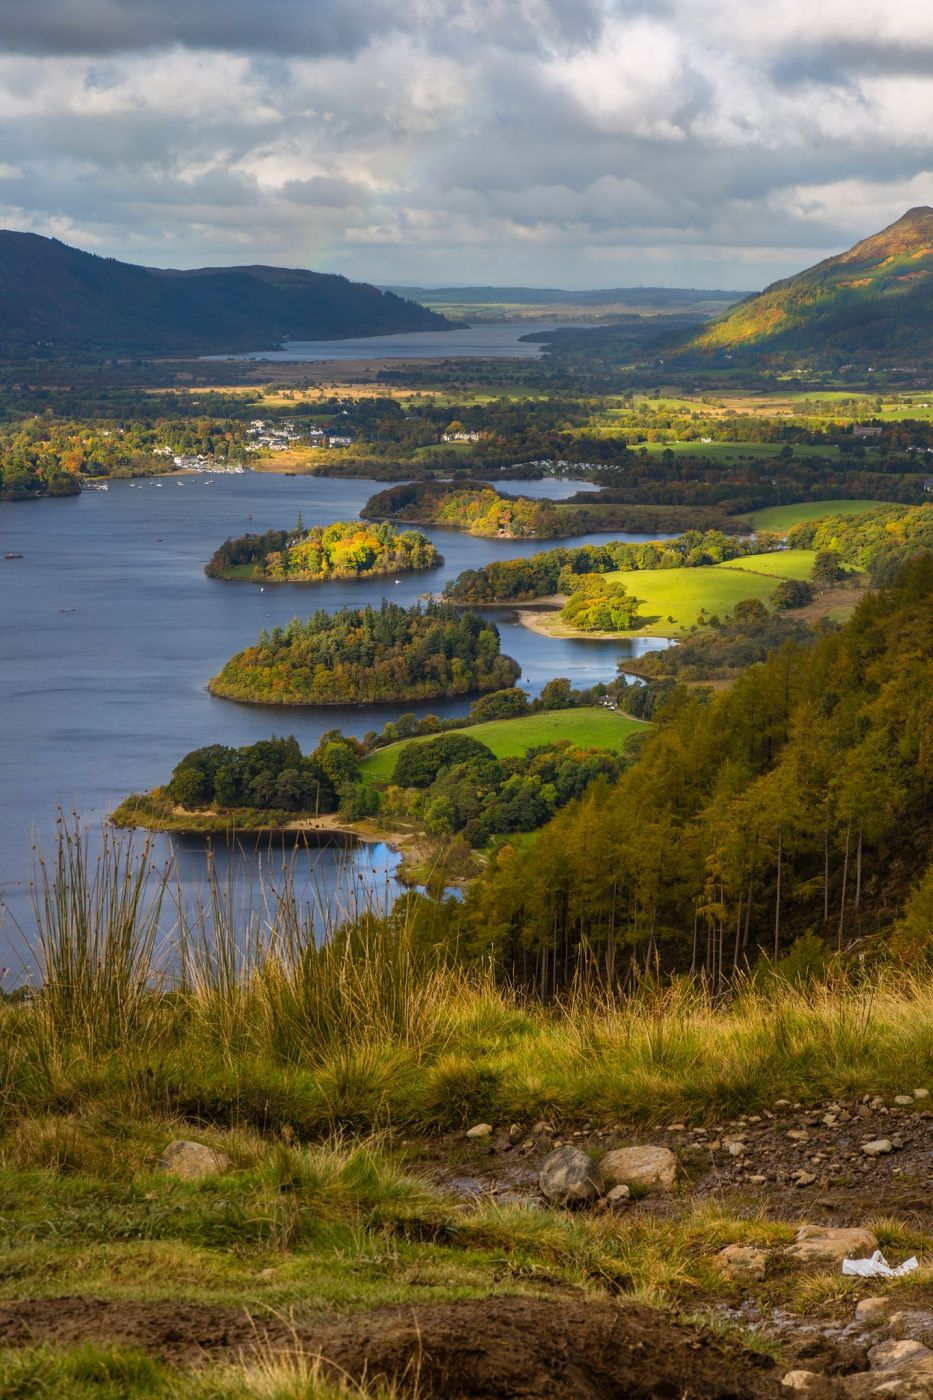 Walla Crag view, United Kingdom